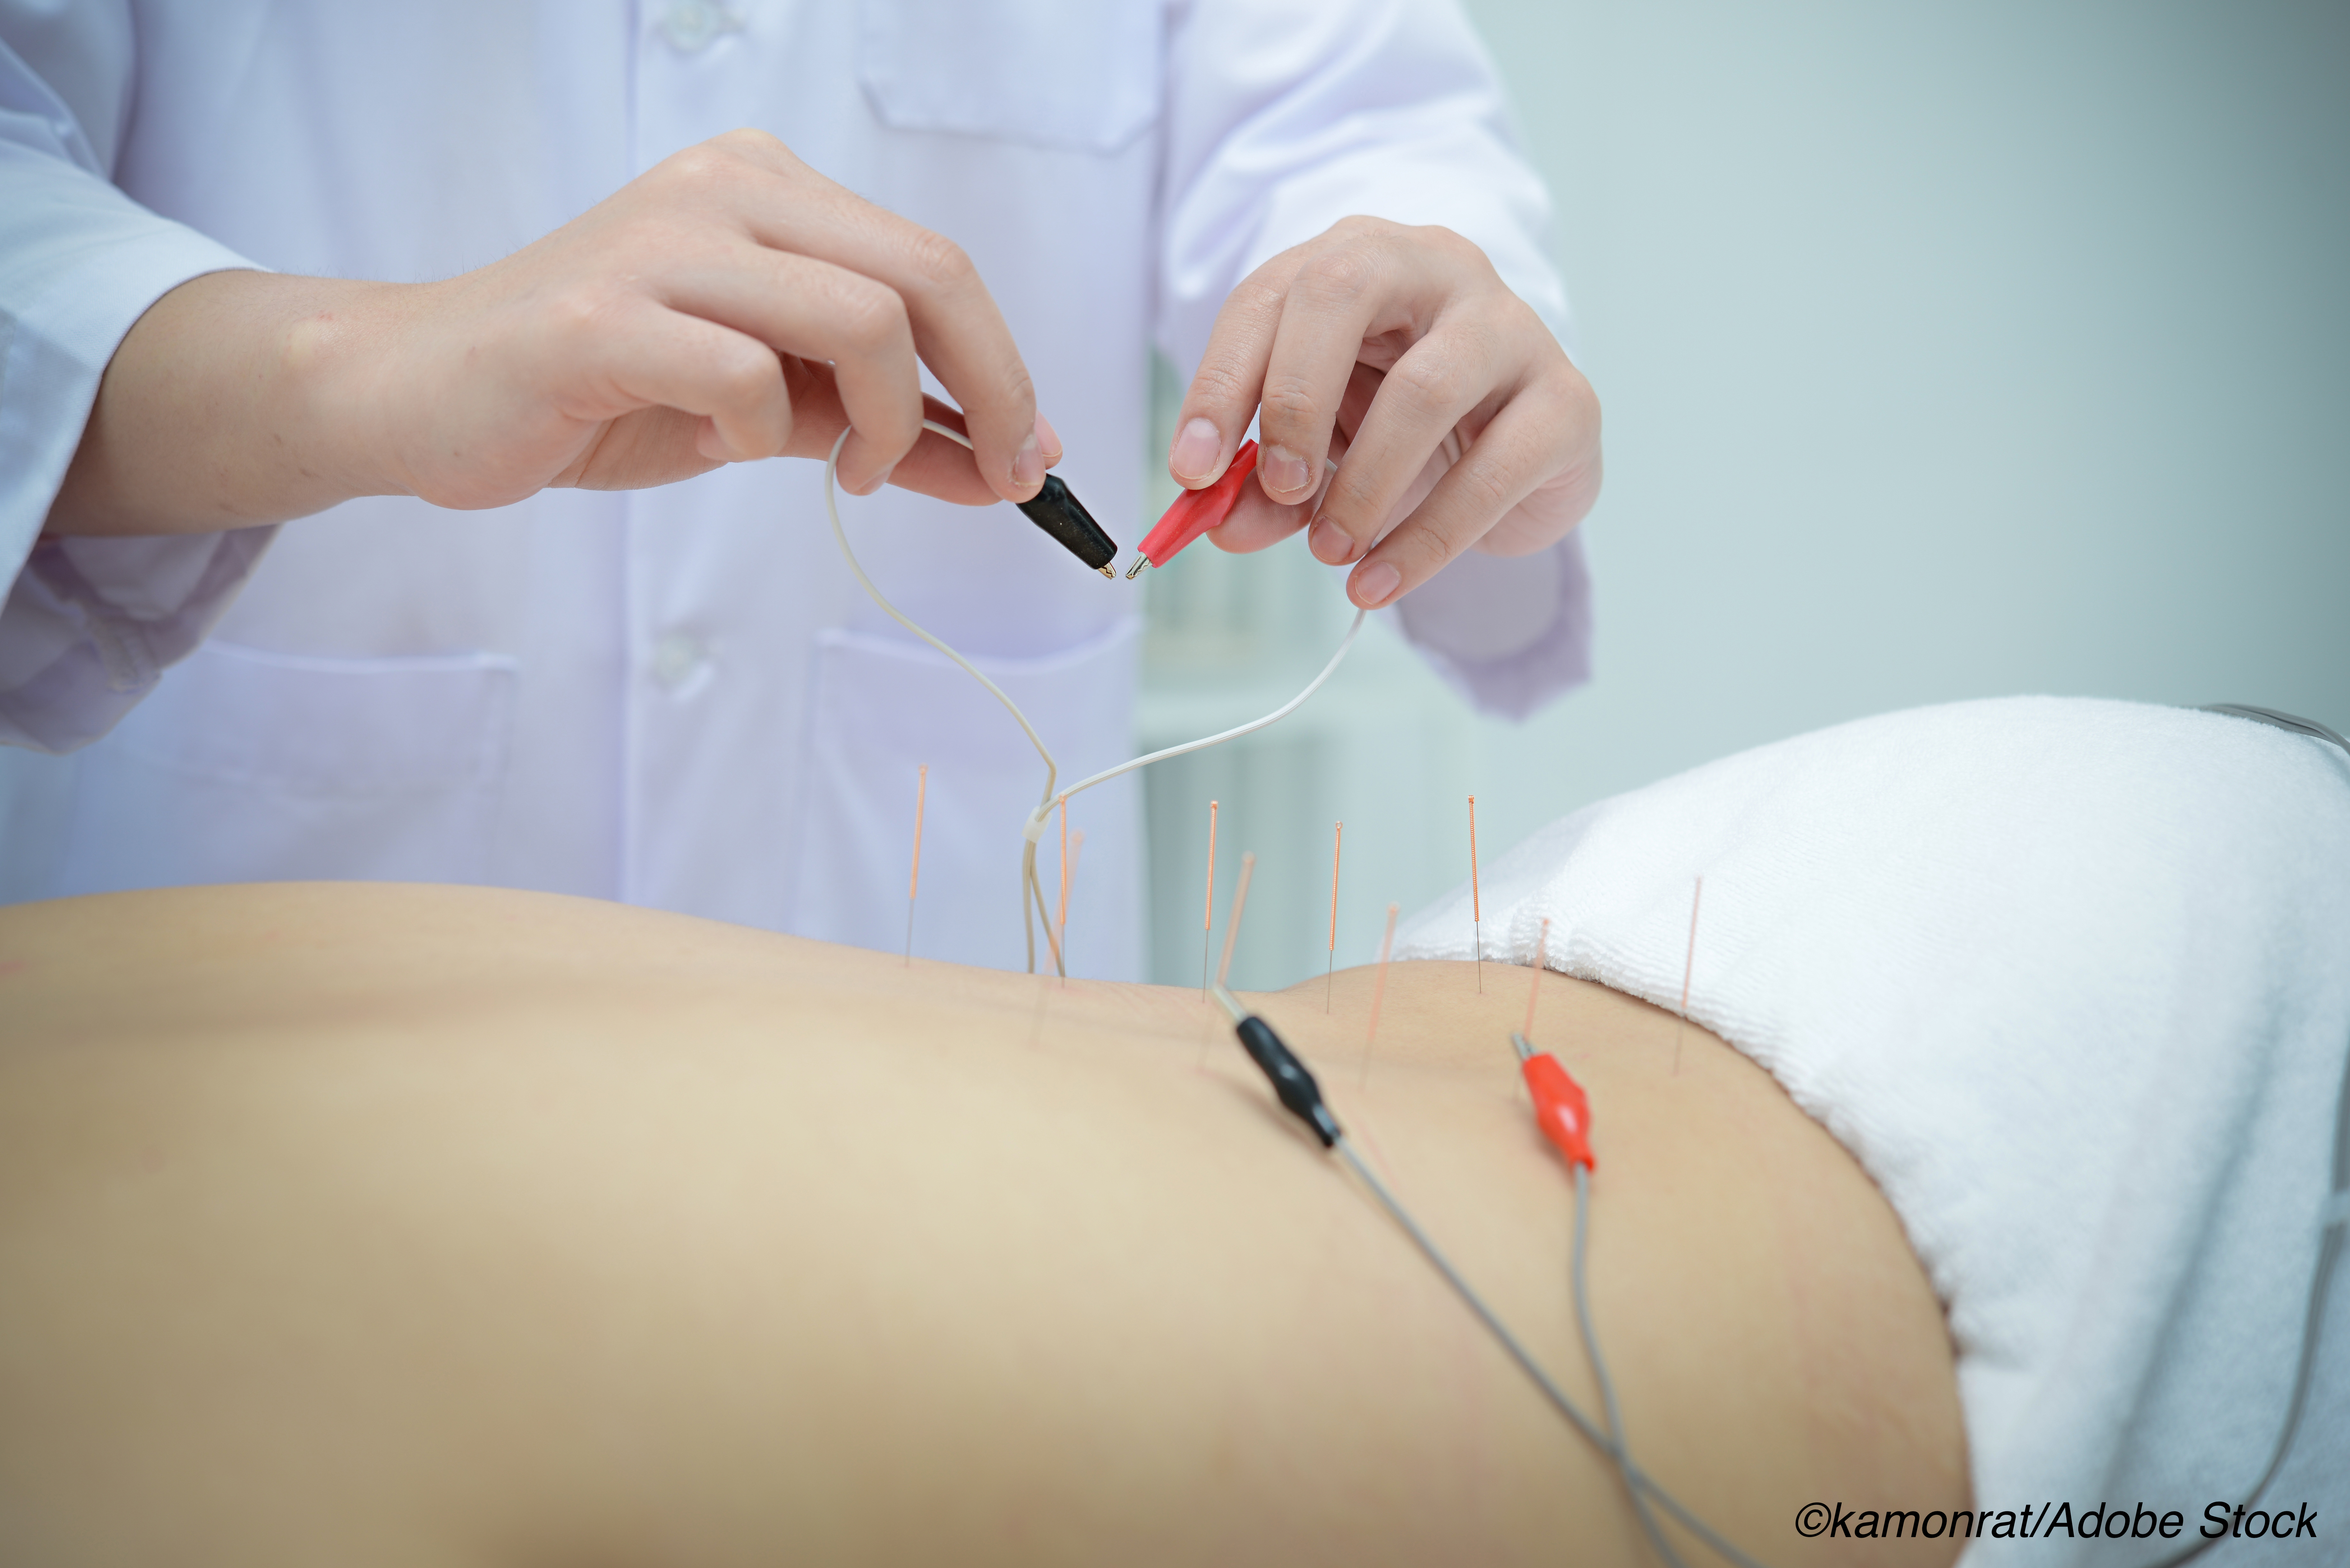 Electroacupuncture Improves Pain-Specific Disability in Chronic Low Back Pain Over Placebo